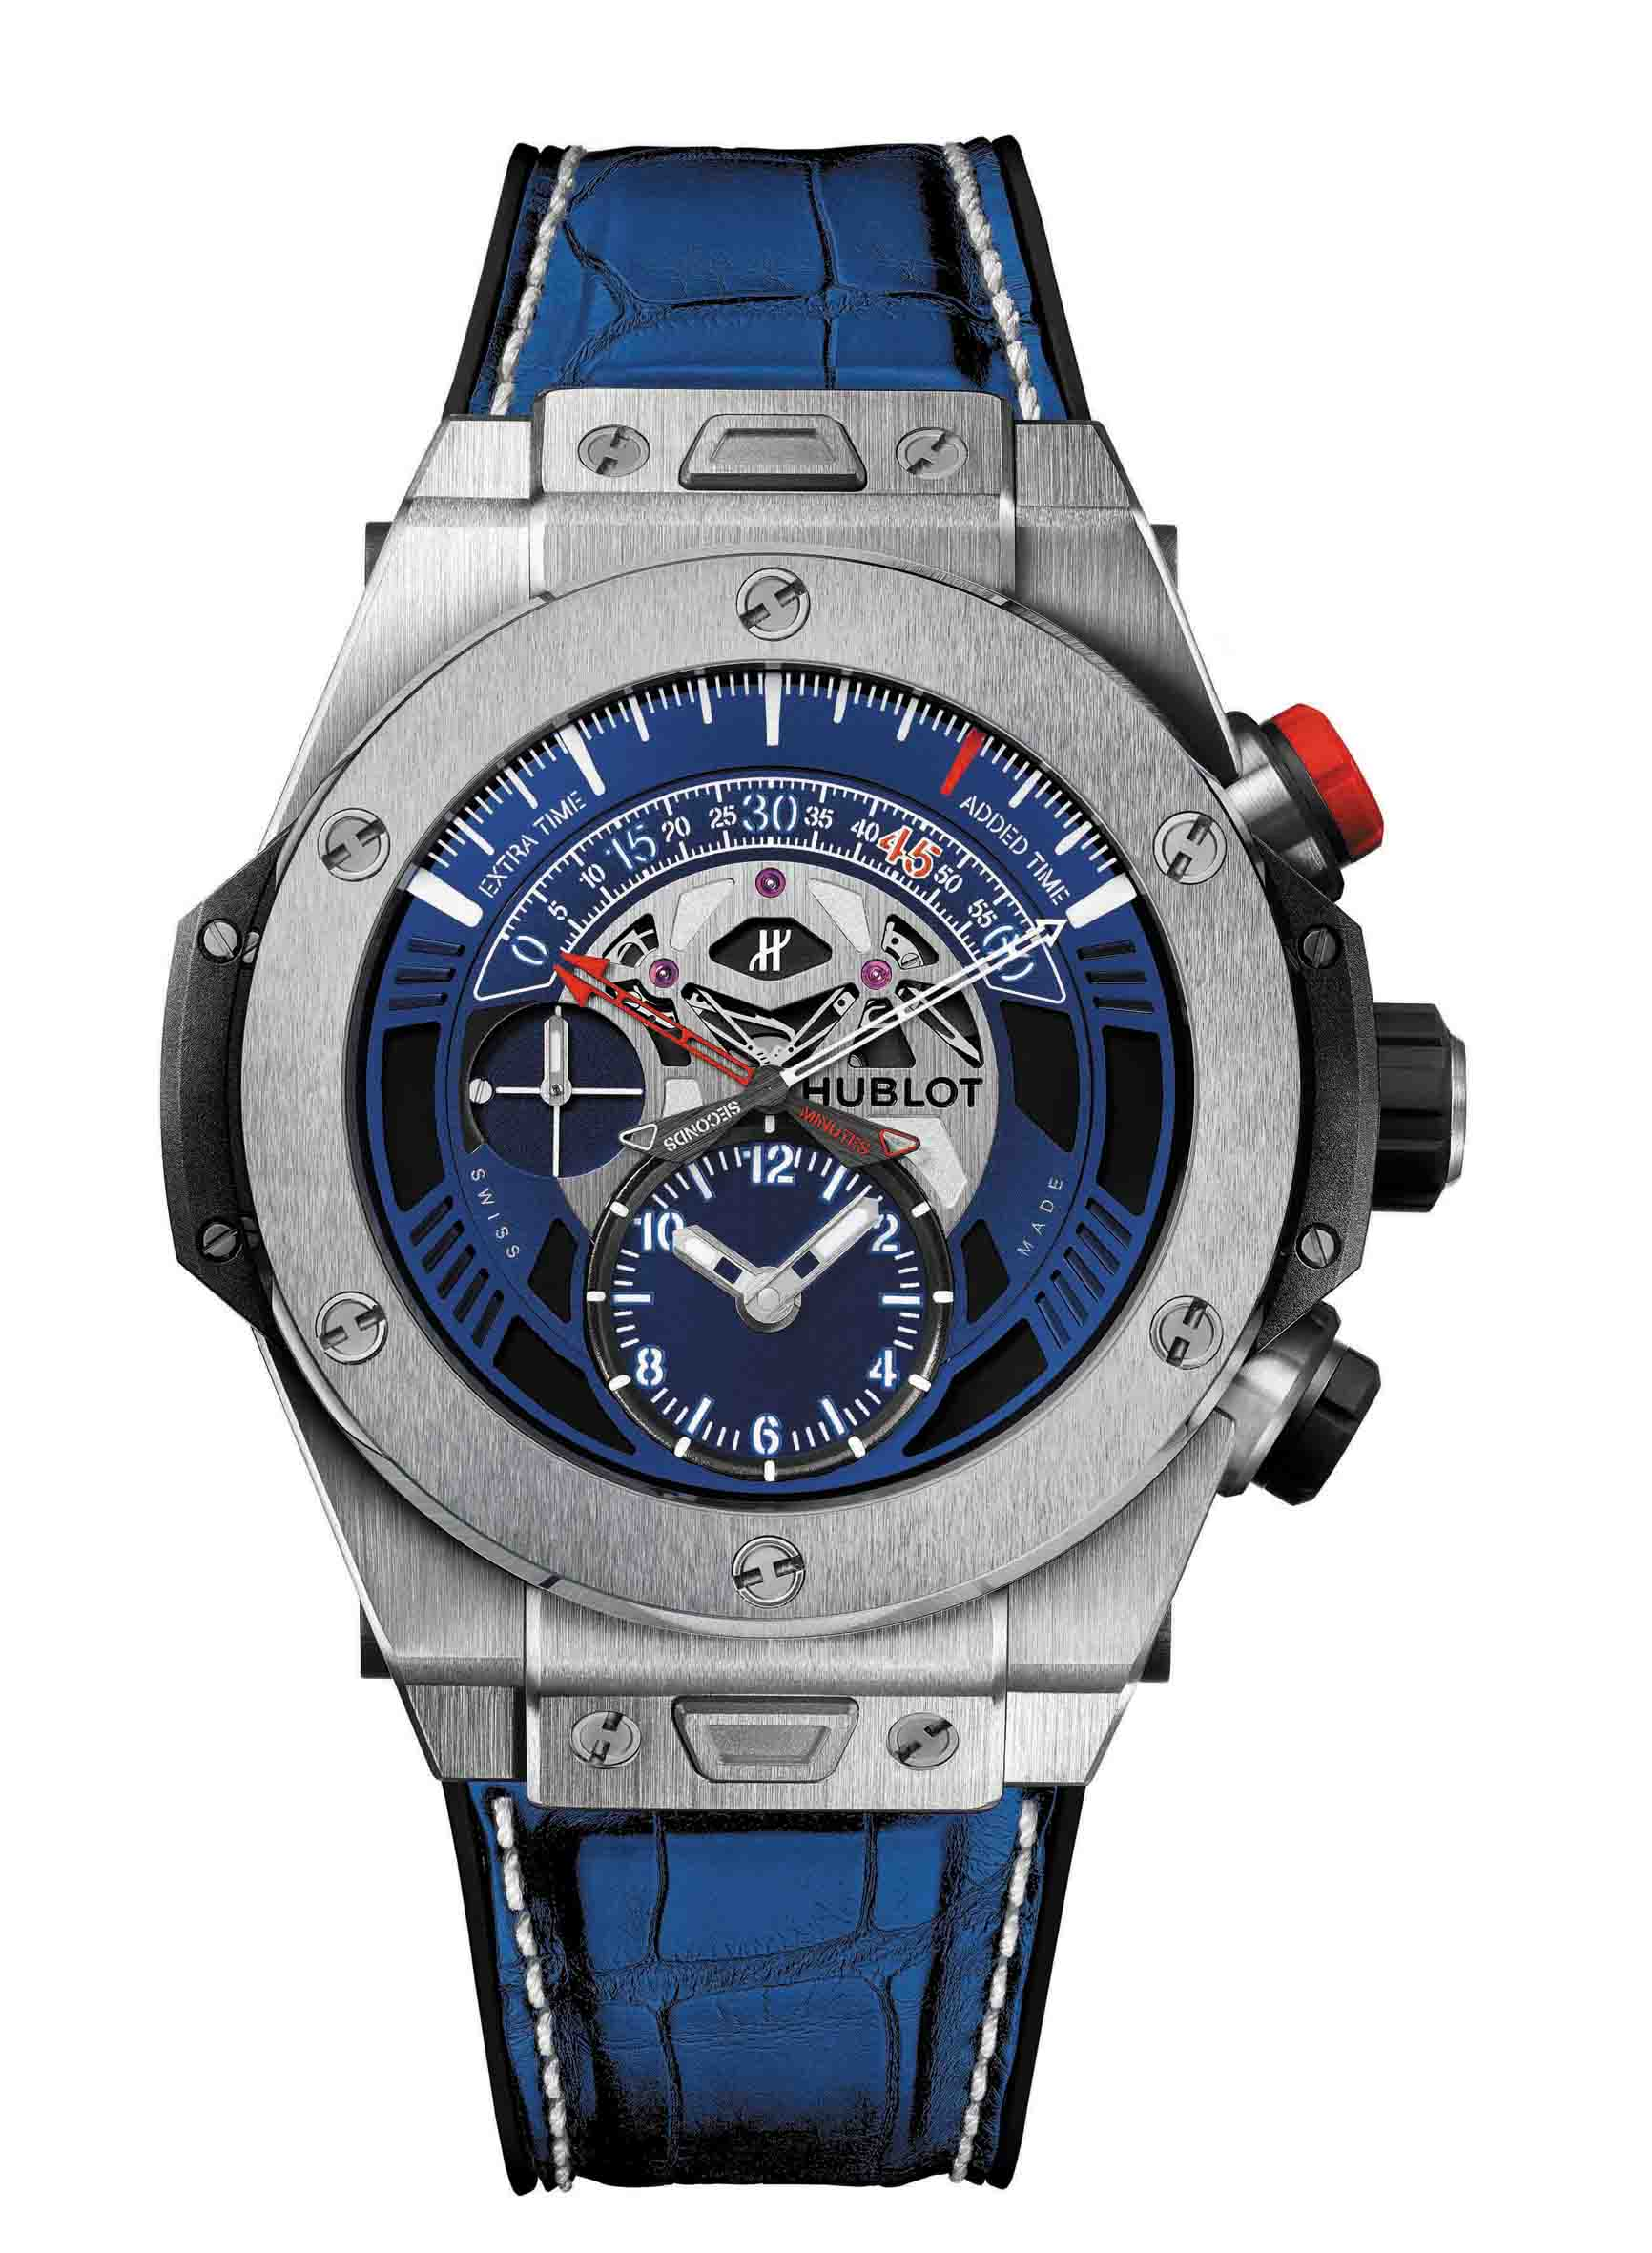 Hublot Loves Football推薦款 - Big Bang UNICO Bi-Retrograde Paris Saint-Germain 限量100只